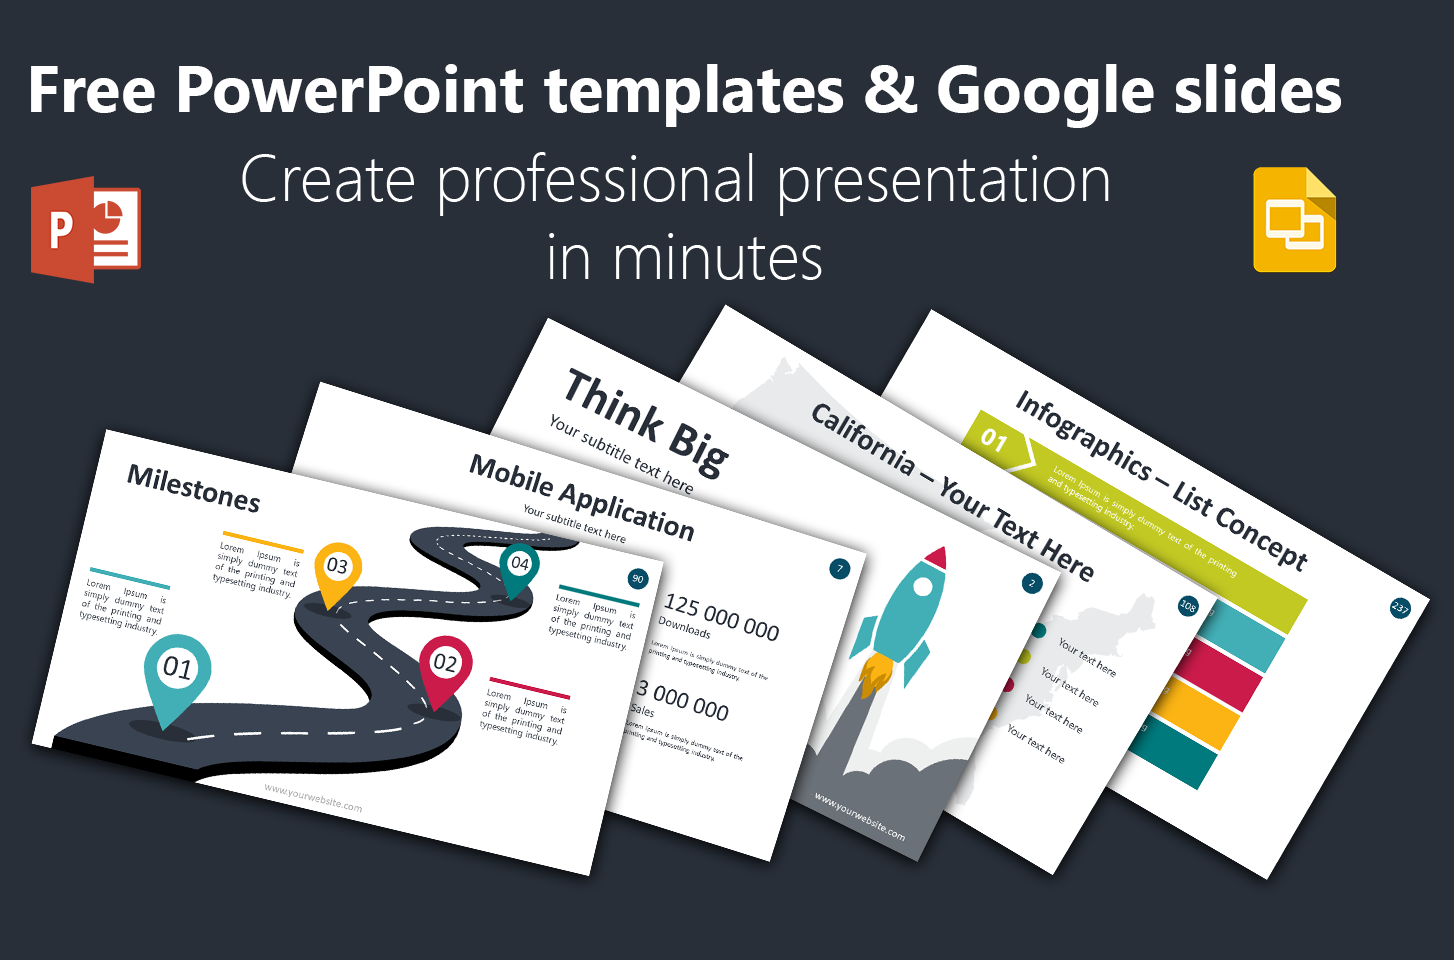 Grtis modelos e fundos do powerpoint google slides themes free powerpoint templates google slides create professional presentation in minutes toneelgroepblik Images